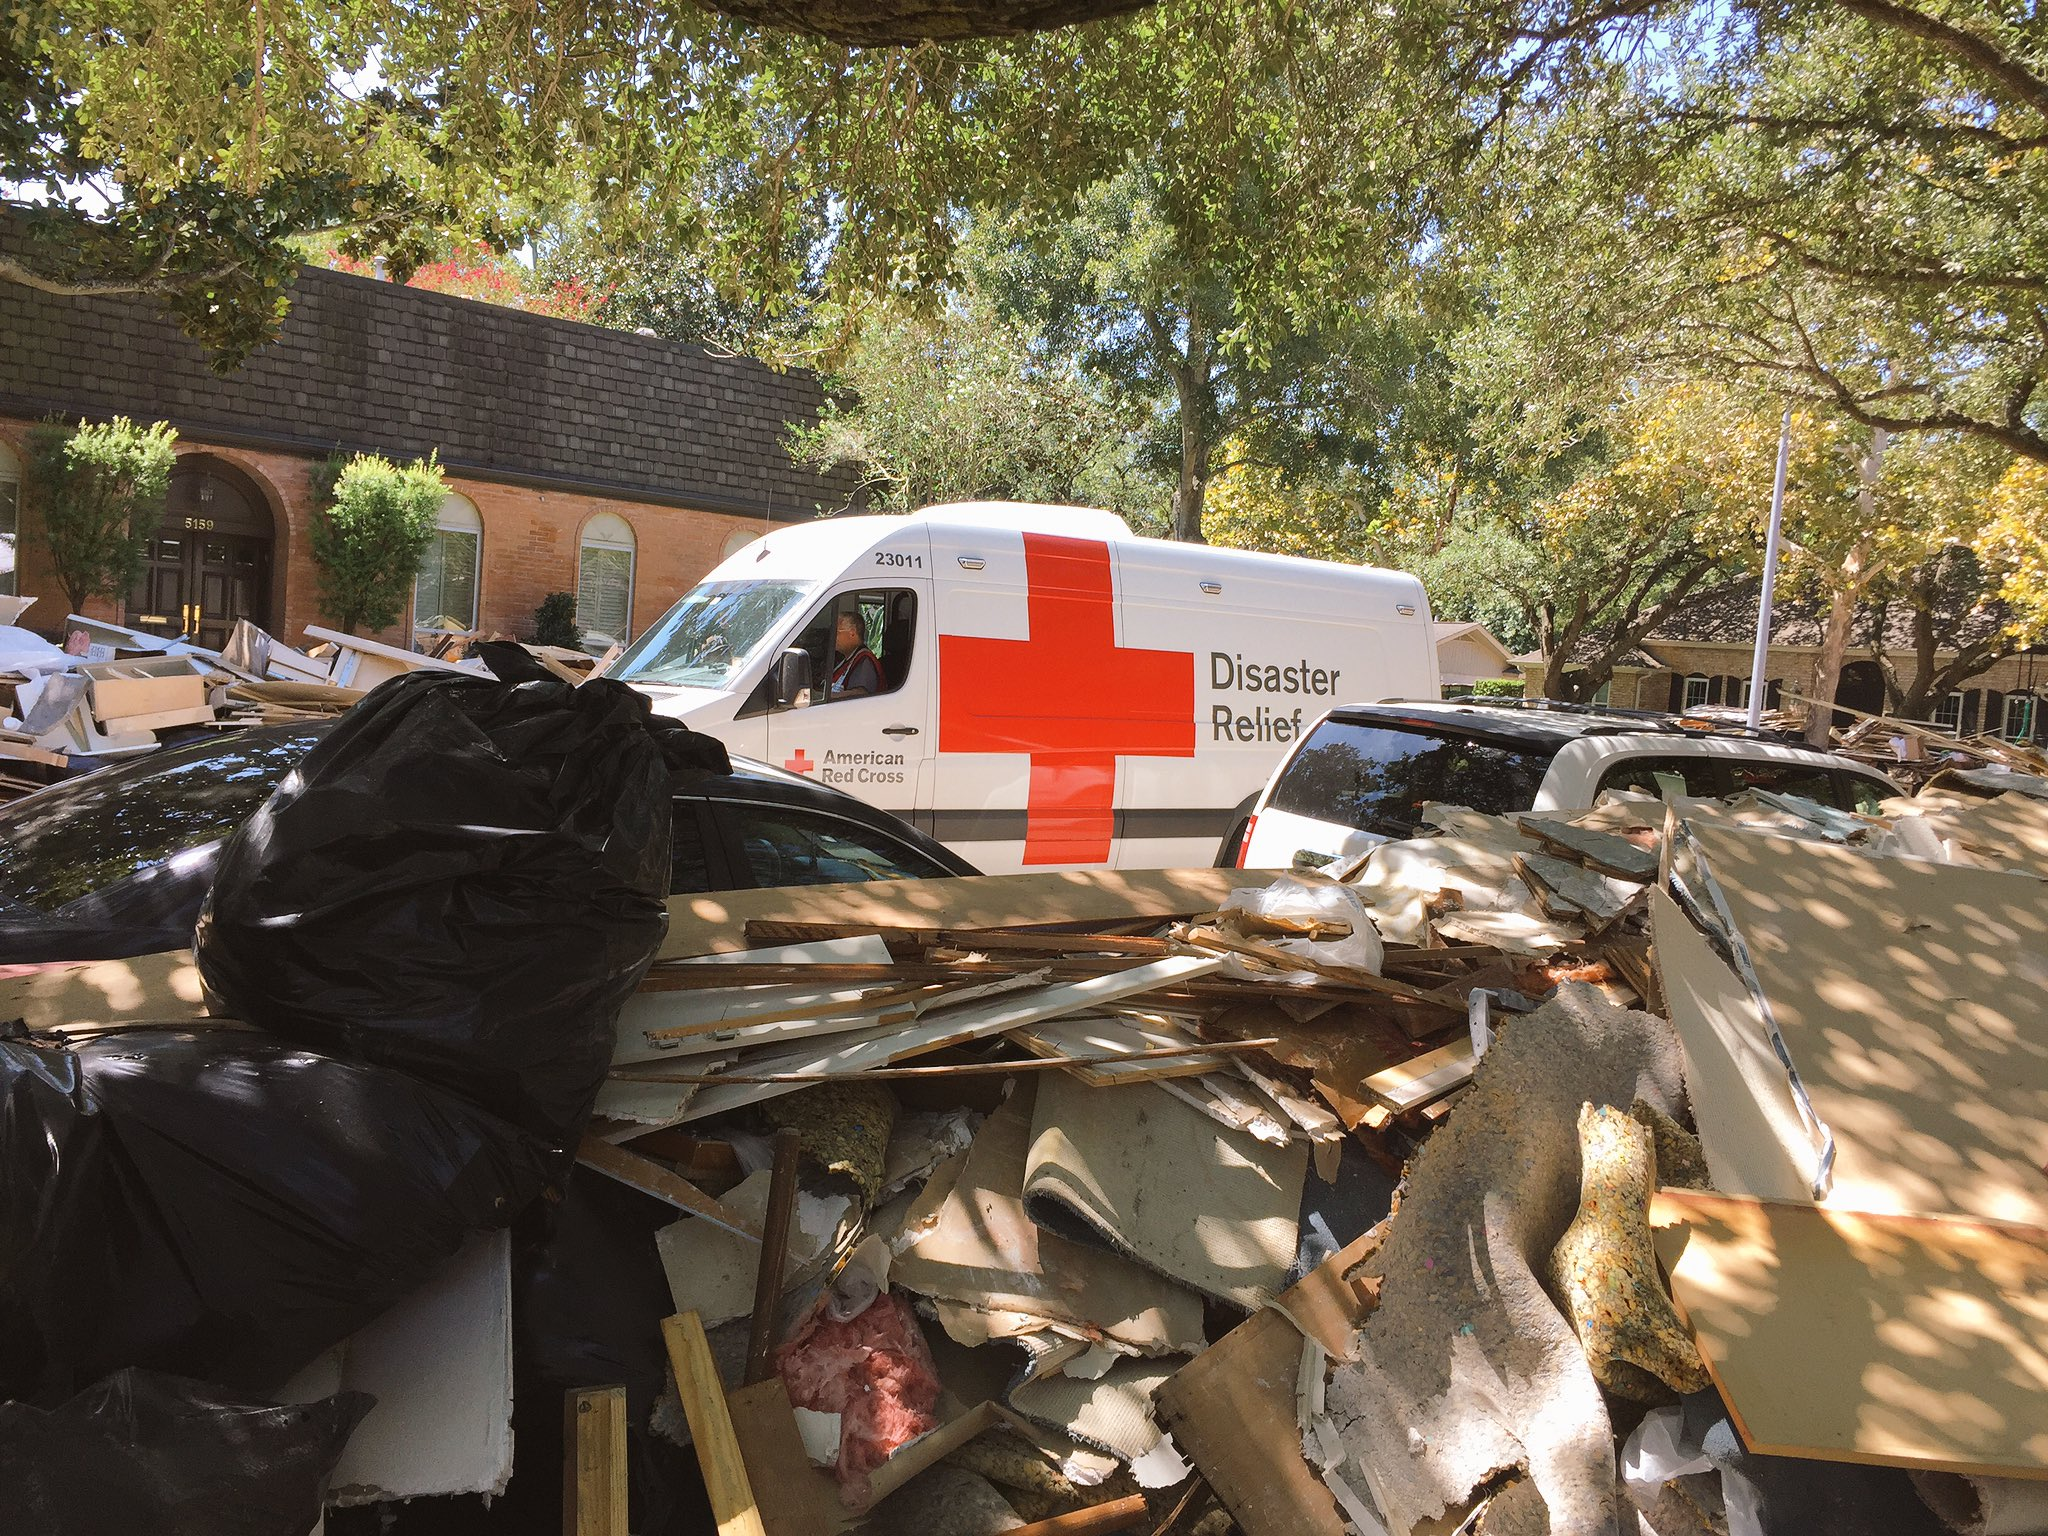 .@RedCross came by to deliver meals to folks in the area #harvey https://t.co/qzTjyghWx6